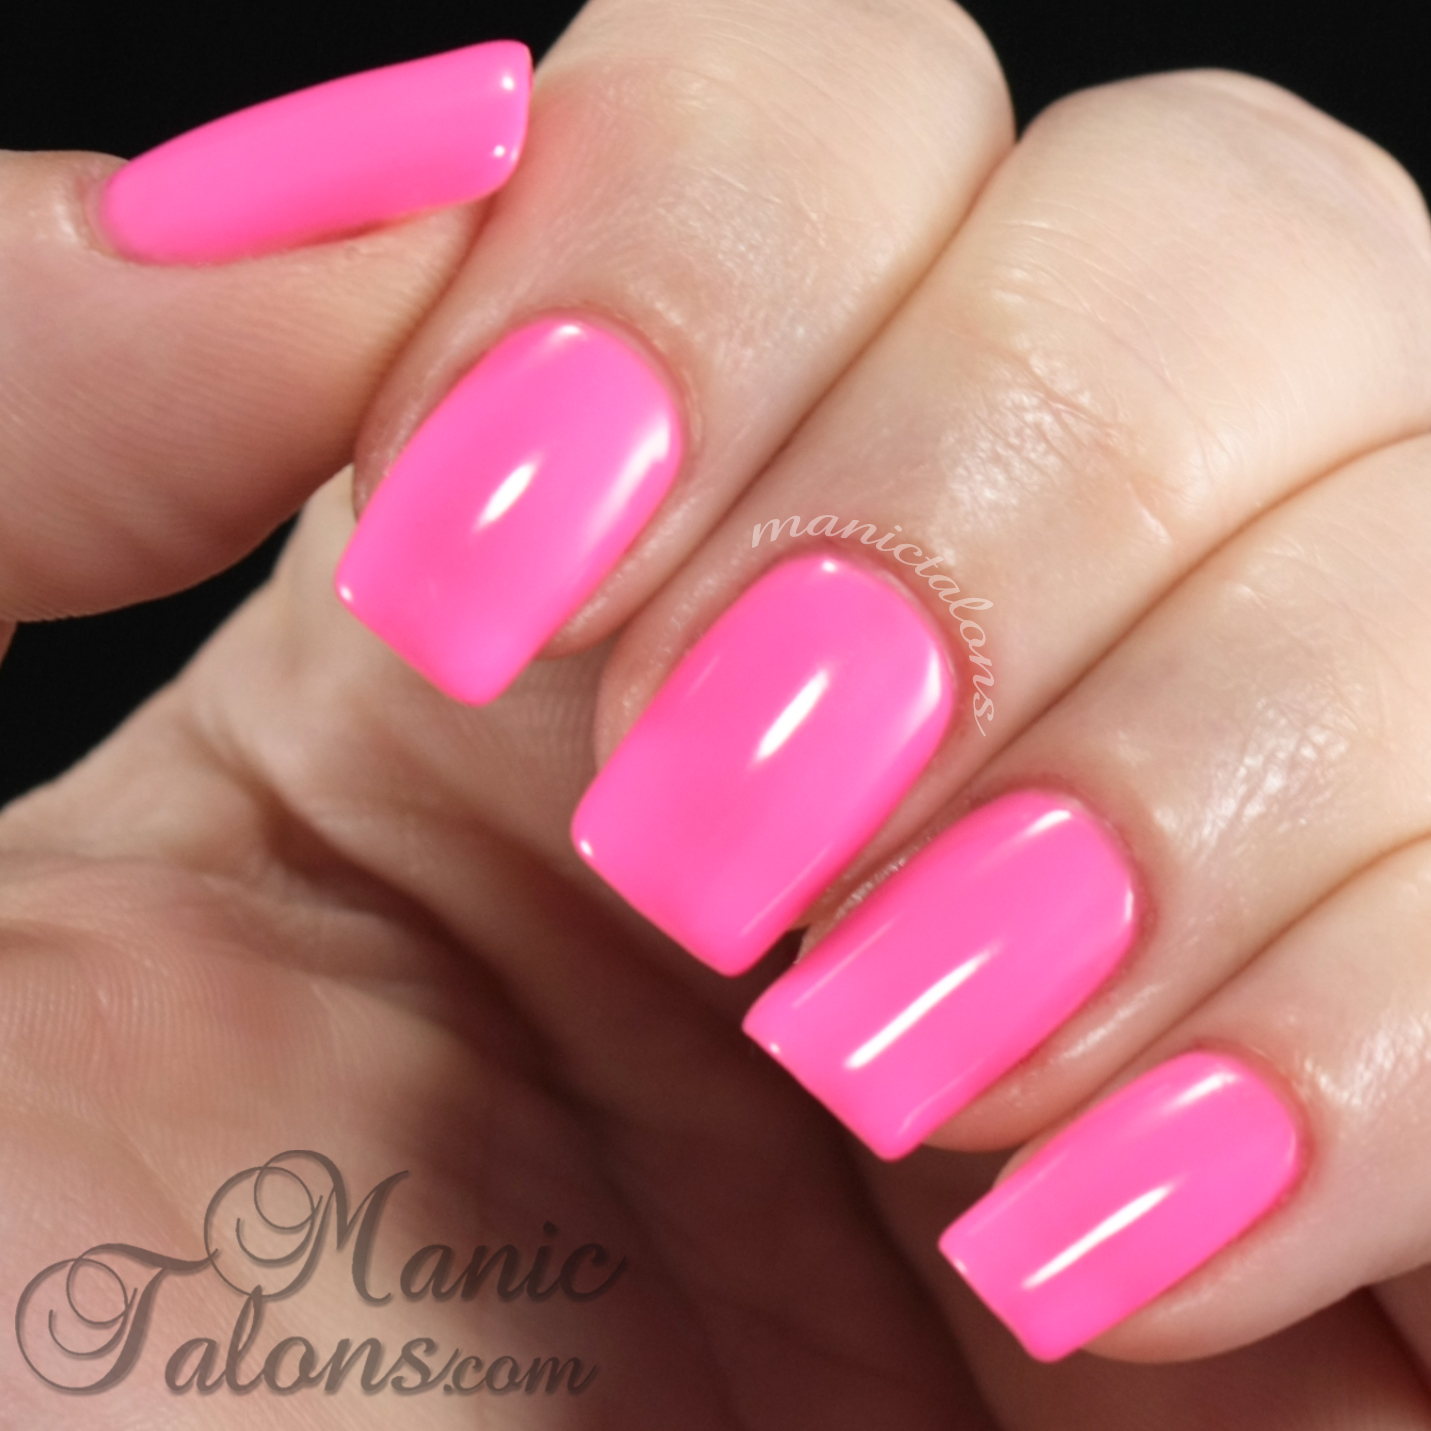 manic talons nail design: bright and fun colors from couture gel